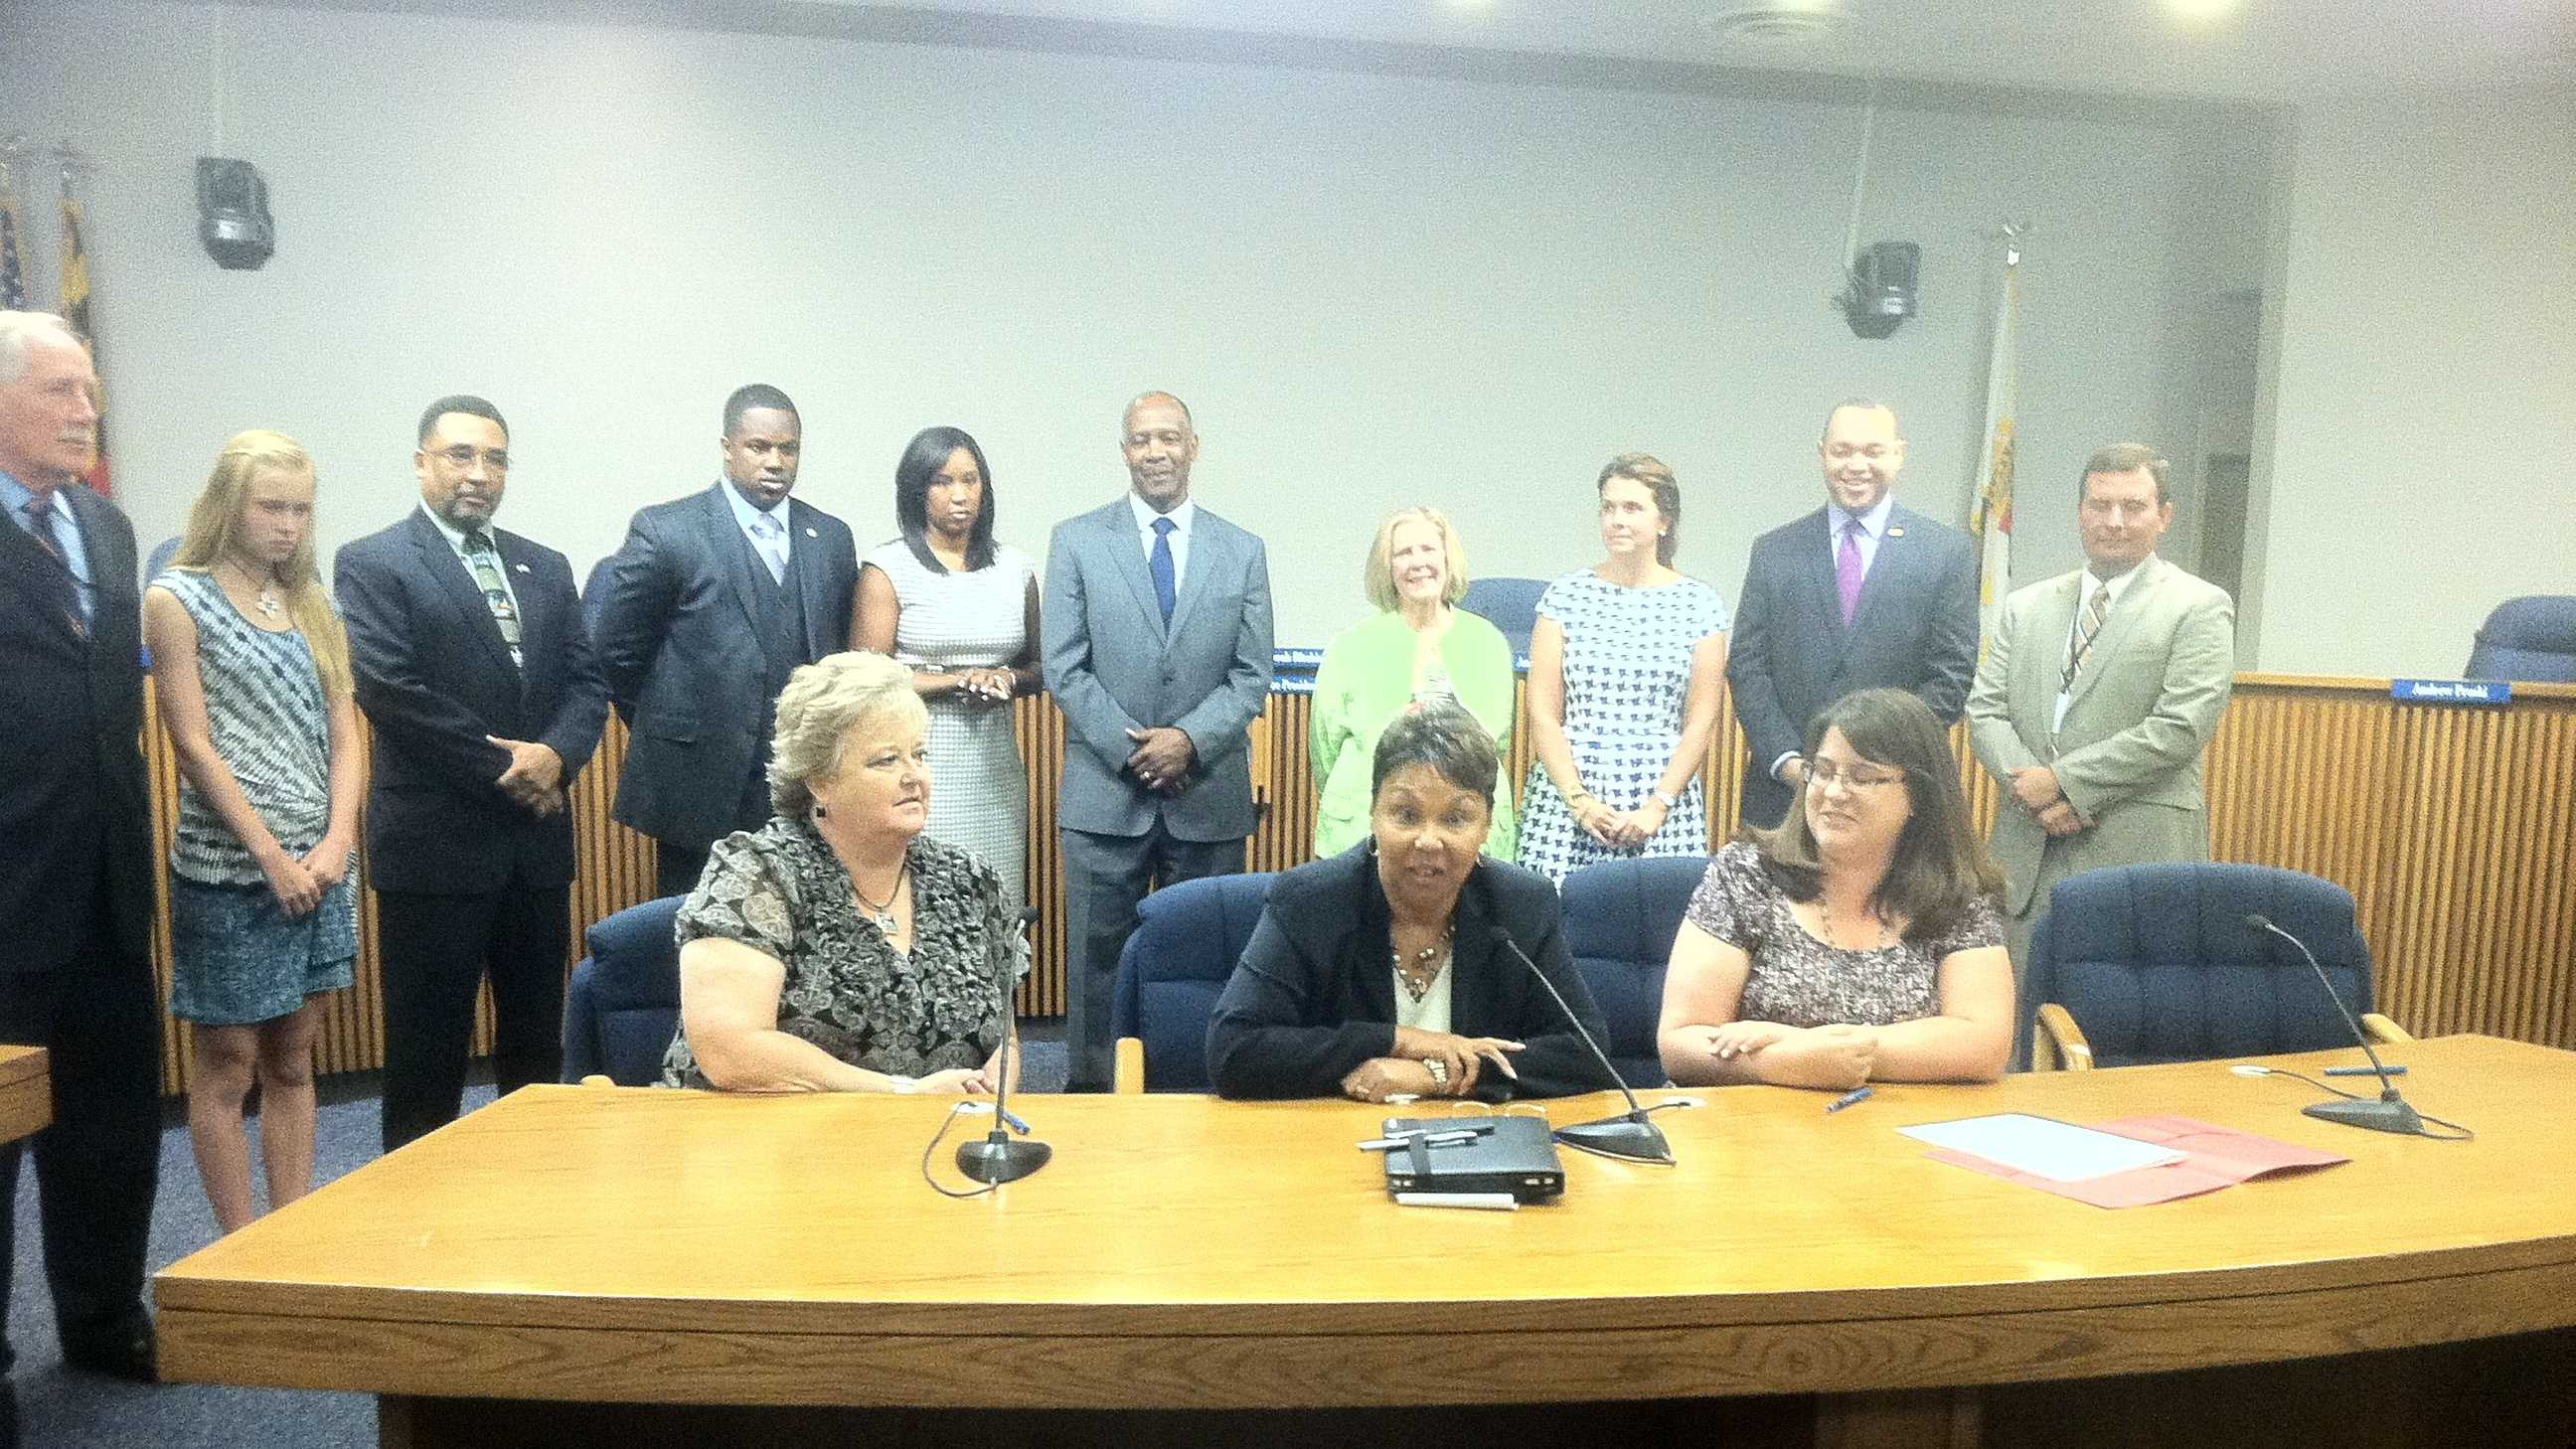 Mamie Perkins approved to serve as acting superintendent.